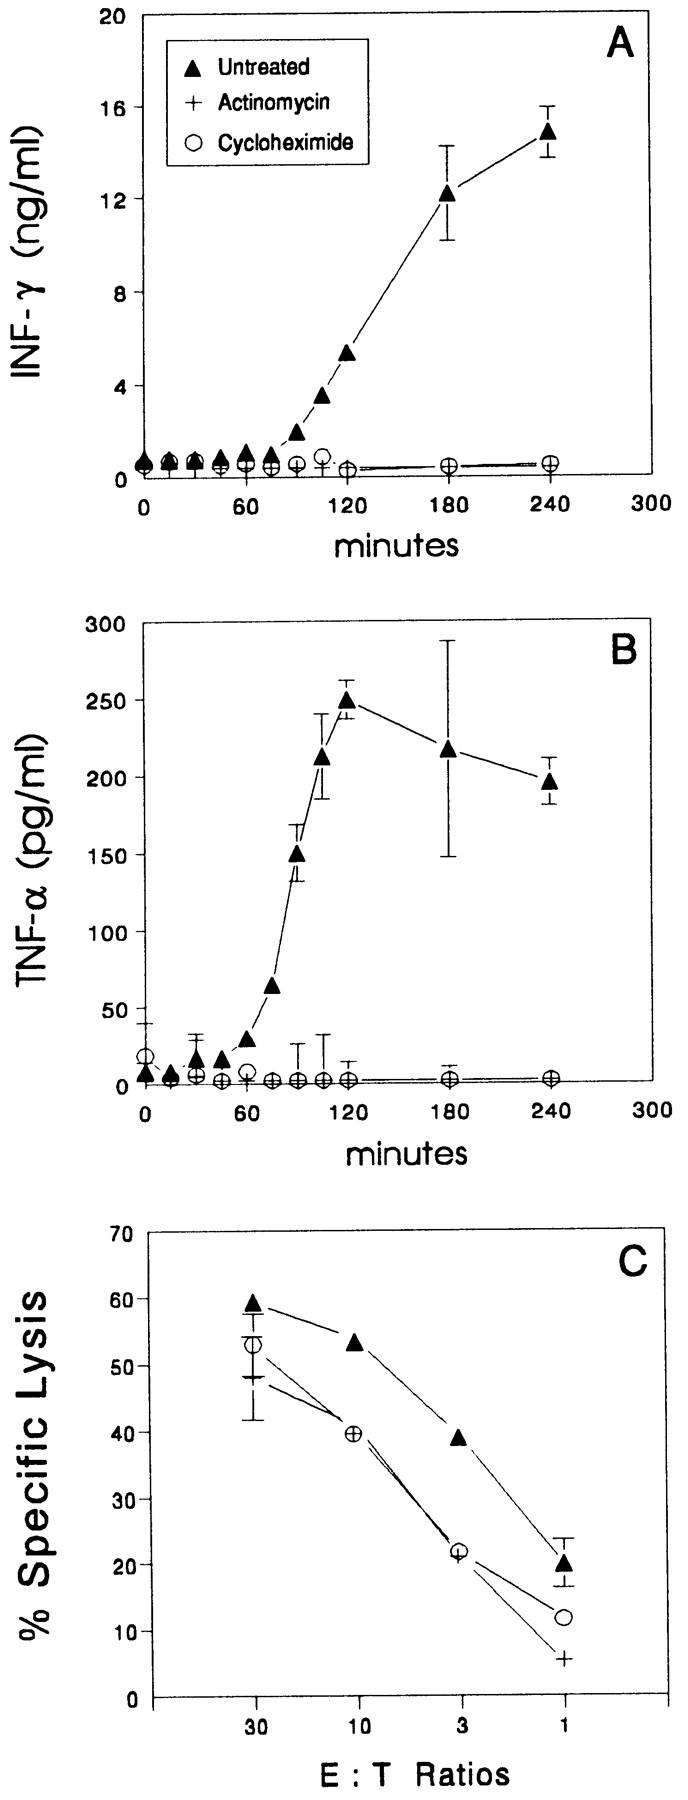 Metabolic inhibitors prevent <t>cytokine</t> production, but not cytolytic activity of CTLs. OVA-CTLs (10 6 /ml) were pretreated with 5 μg/ml actinomycin D, 15 μg/ml cycloheximide, or medium at 37°C for 1 h. The cells were then washed and incubated with 10 5 of E.G7-OVA. After incubation at 37°C for various periods of time, supernatants were tested for production of ( A ) IFN-γ and ( B ) TNF-α by ELISA. In C , pretreated OVA-CTLs were incubated with 51 Cr-labeled targets. After 4 h, supernatant fluids were collected and counted. The results of one of two similar experiments are shown as the mean of triplicates ± SD.